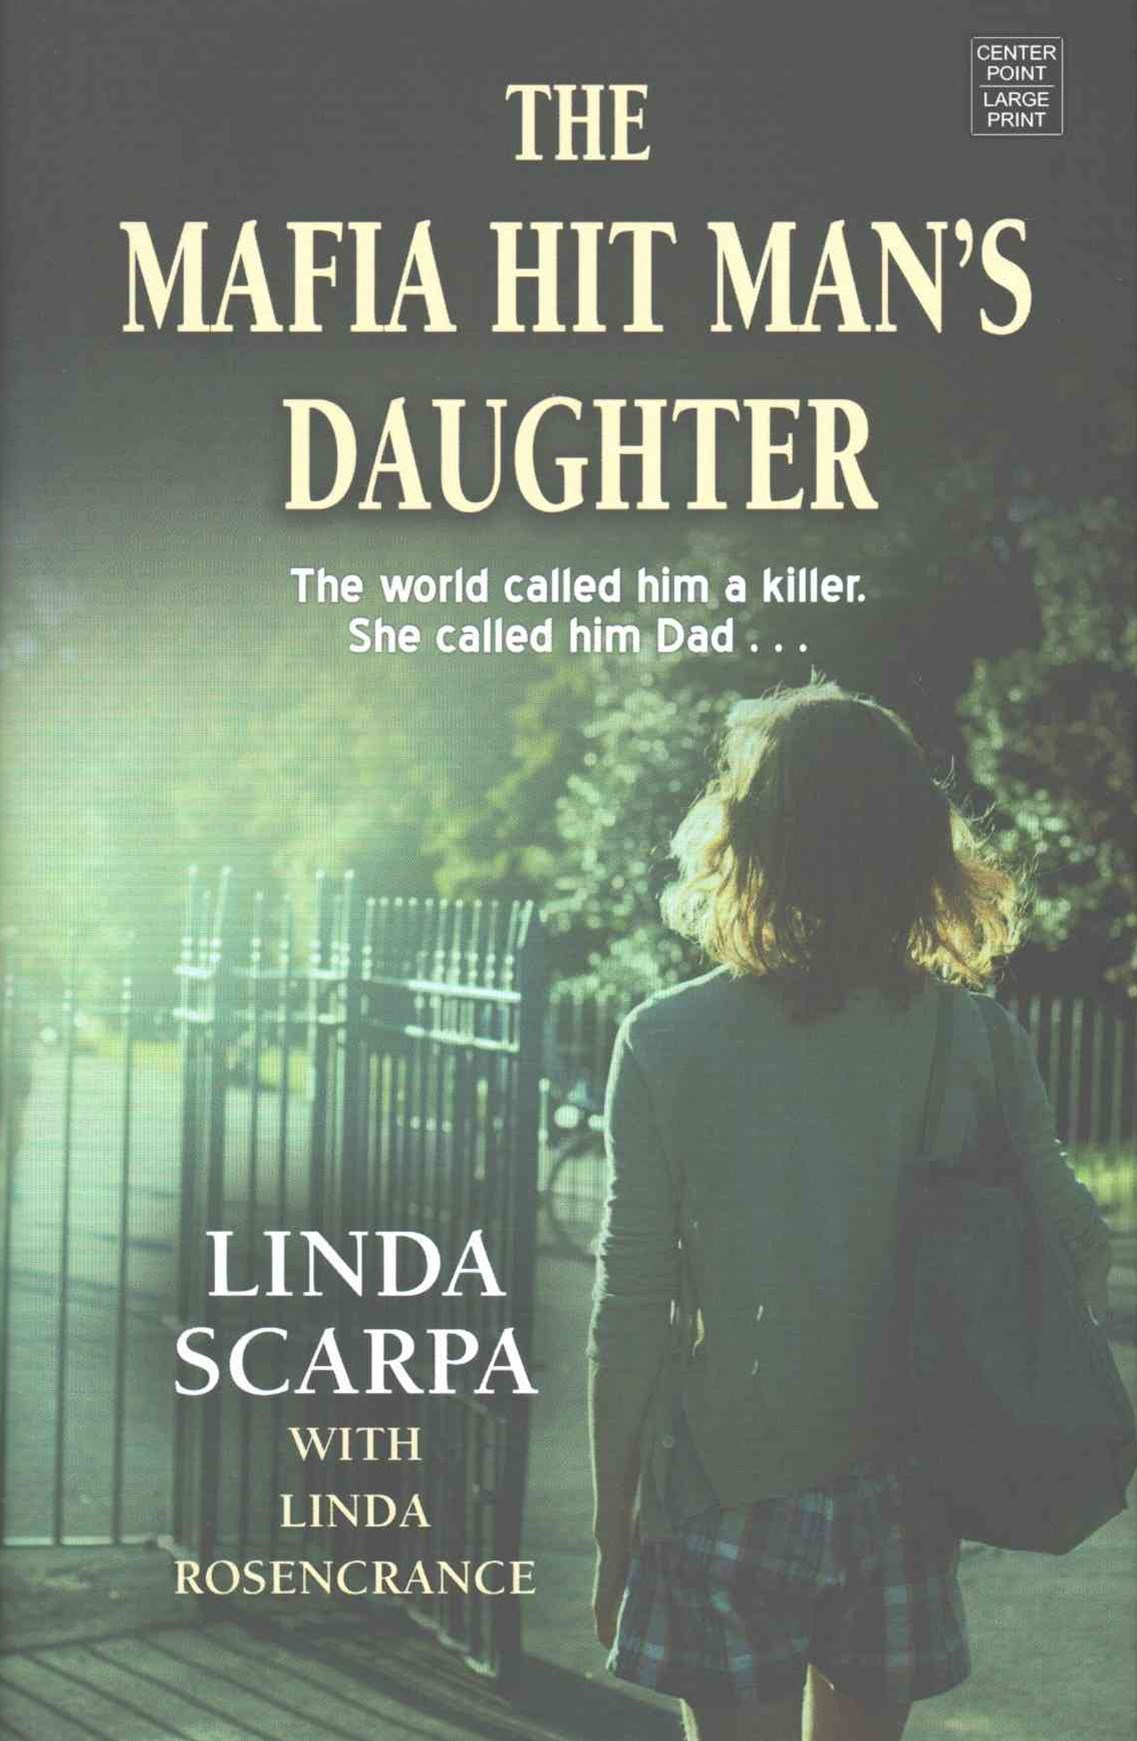 The Mafia Hit Man's Daughter